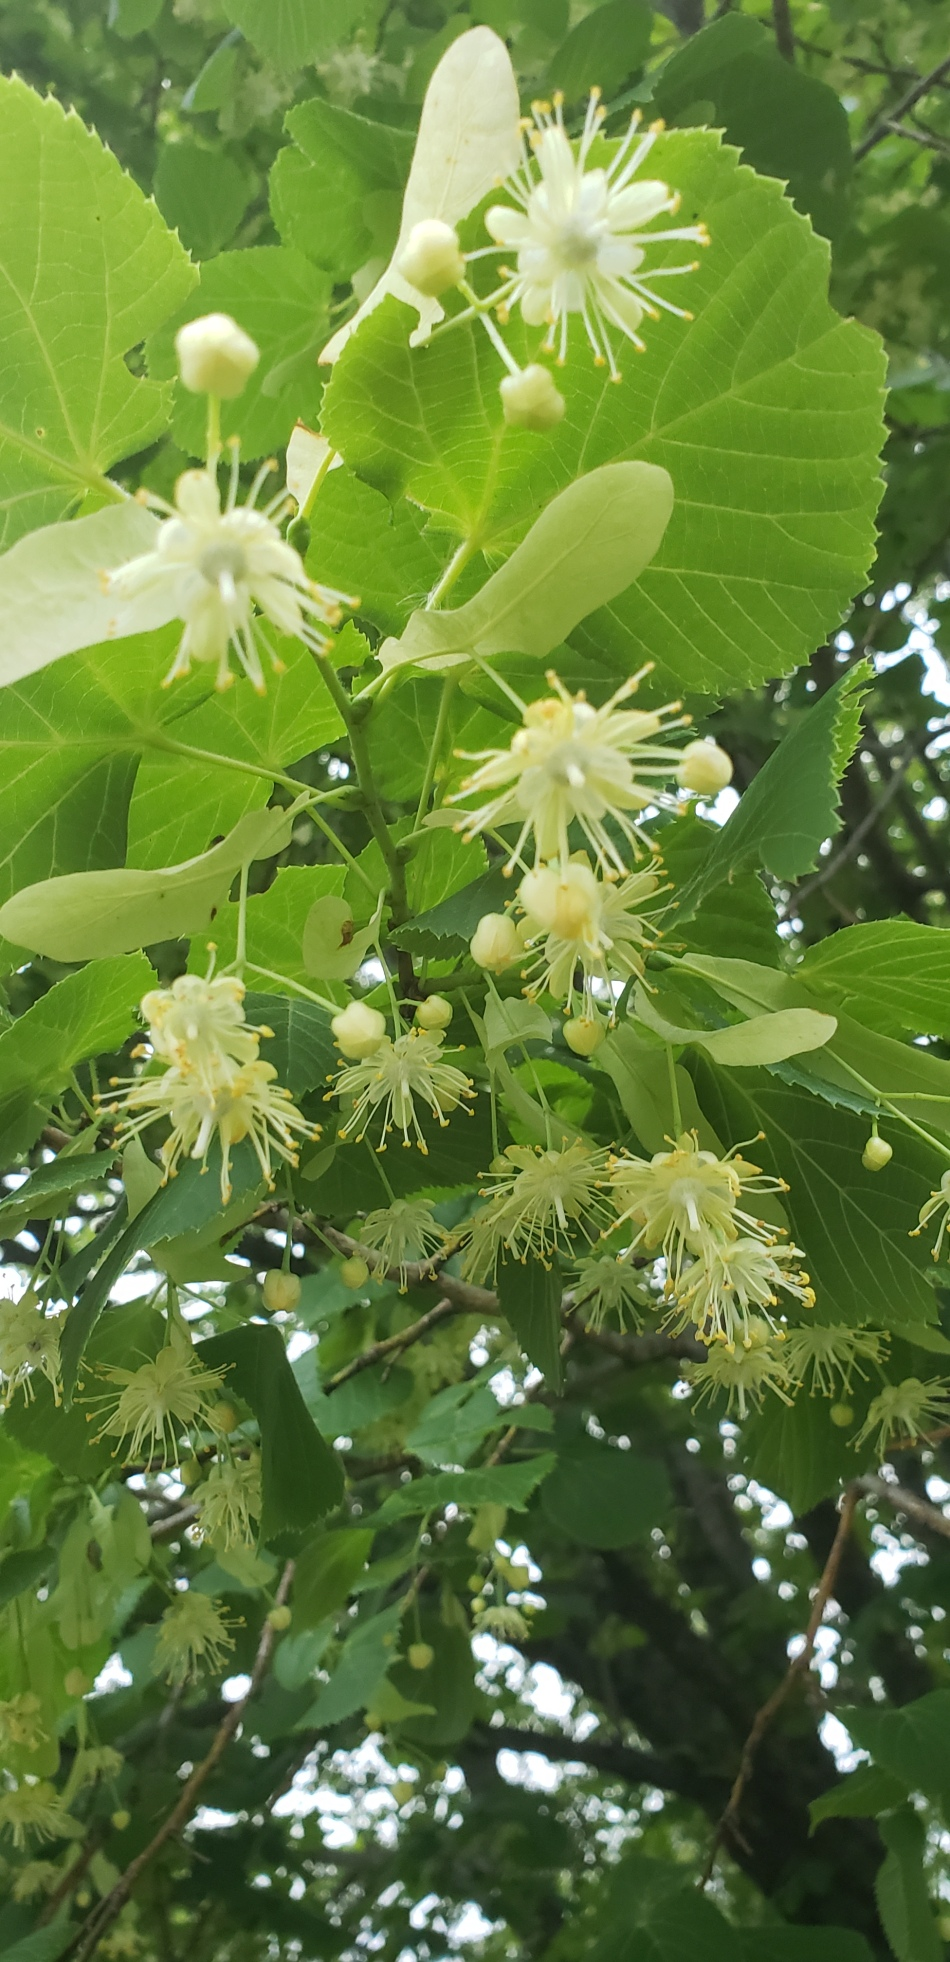 20190622_195830 basswood flowers